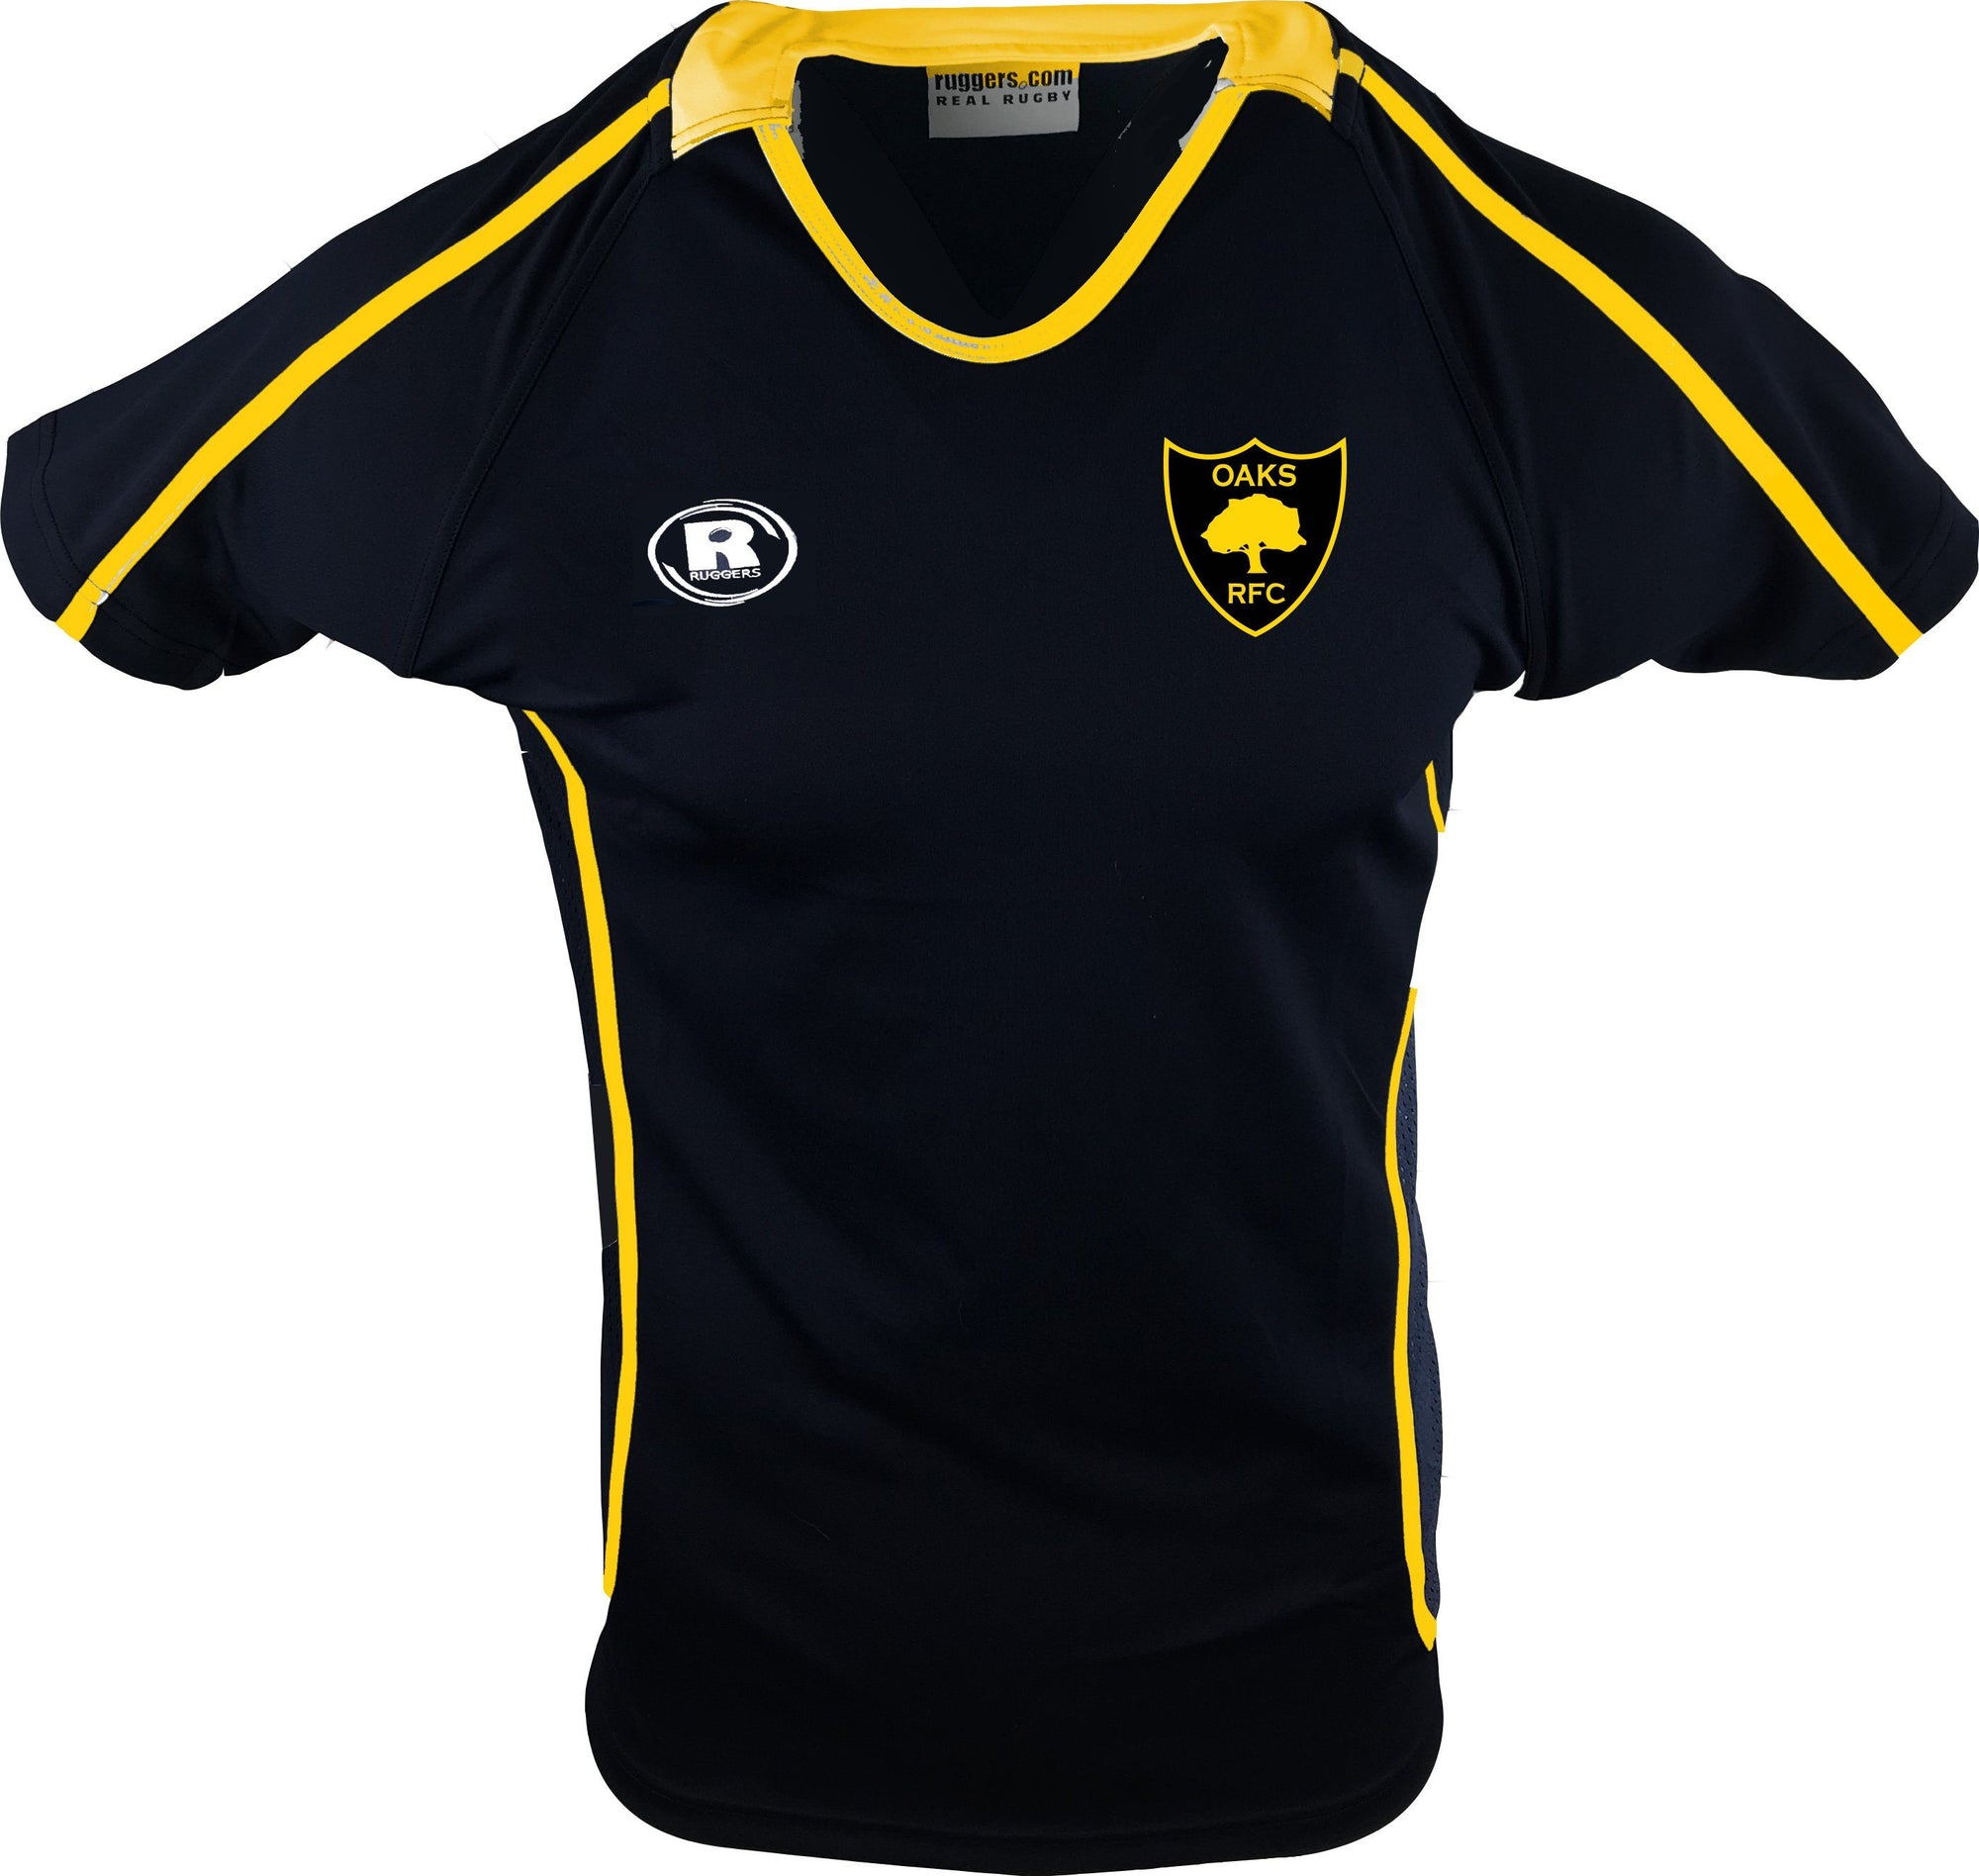 Danville Oaks Youth Rugby Jersey